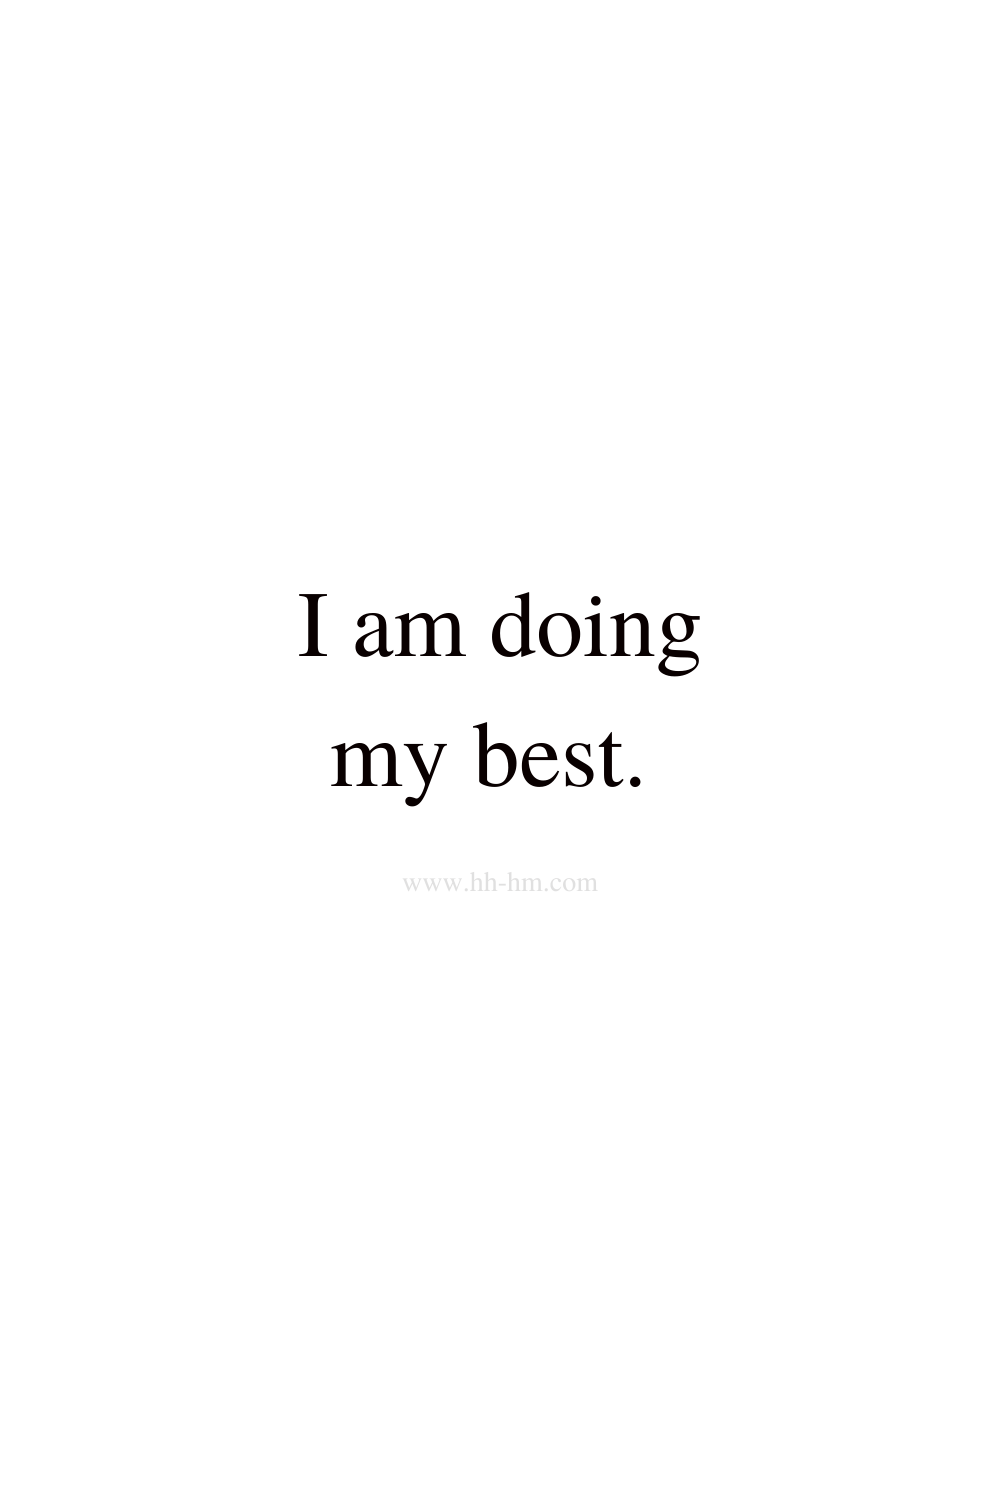 I am doing my best - self love and self confidence morning affirmations